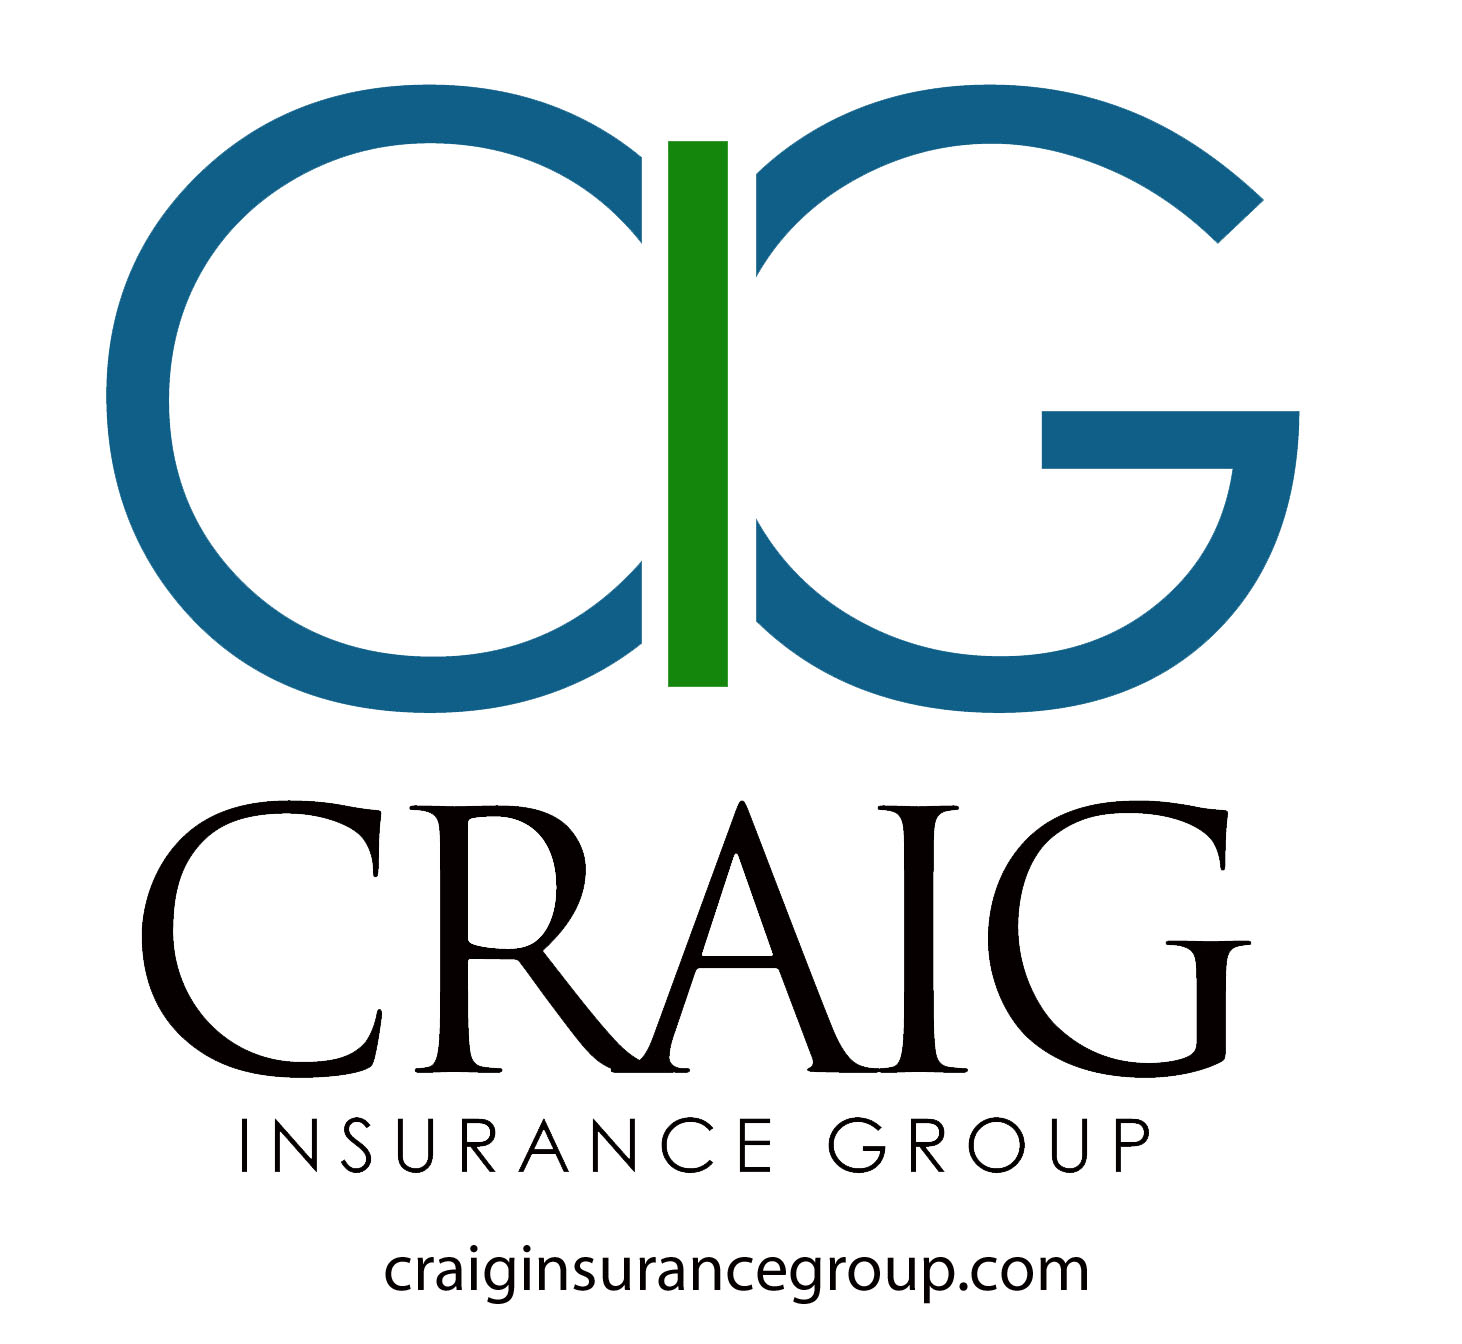 "Craig Insurance Group - The Craig Insurance Group (CIG) has been serving the Raleigh/Durham area since 2007. CIG is licensed in Maryland, Virginia, South Carolina, North Carolina, and Georgia. Our offices in North Carolina are located in Raleigh, Durham, and Garner. One of CIG's main objective is to take care of the community and educate members to better understand the importance of having insurance and the risk they are taking by not having any insurance or being underinsured. This is where our slogan ""We Know Insurance So You Don't Have To"" originated from. We, as an agency, want our members to trust the expertise given by our agents but also be aware of what is happening with their policies as well."